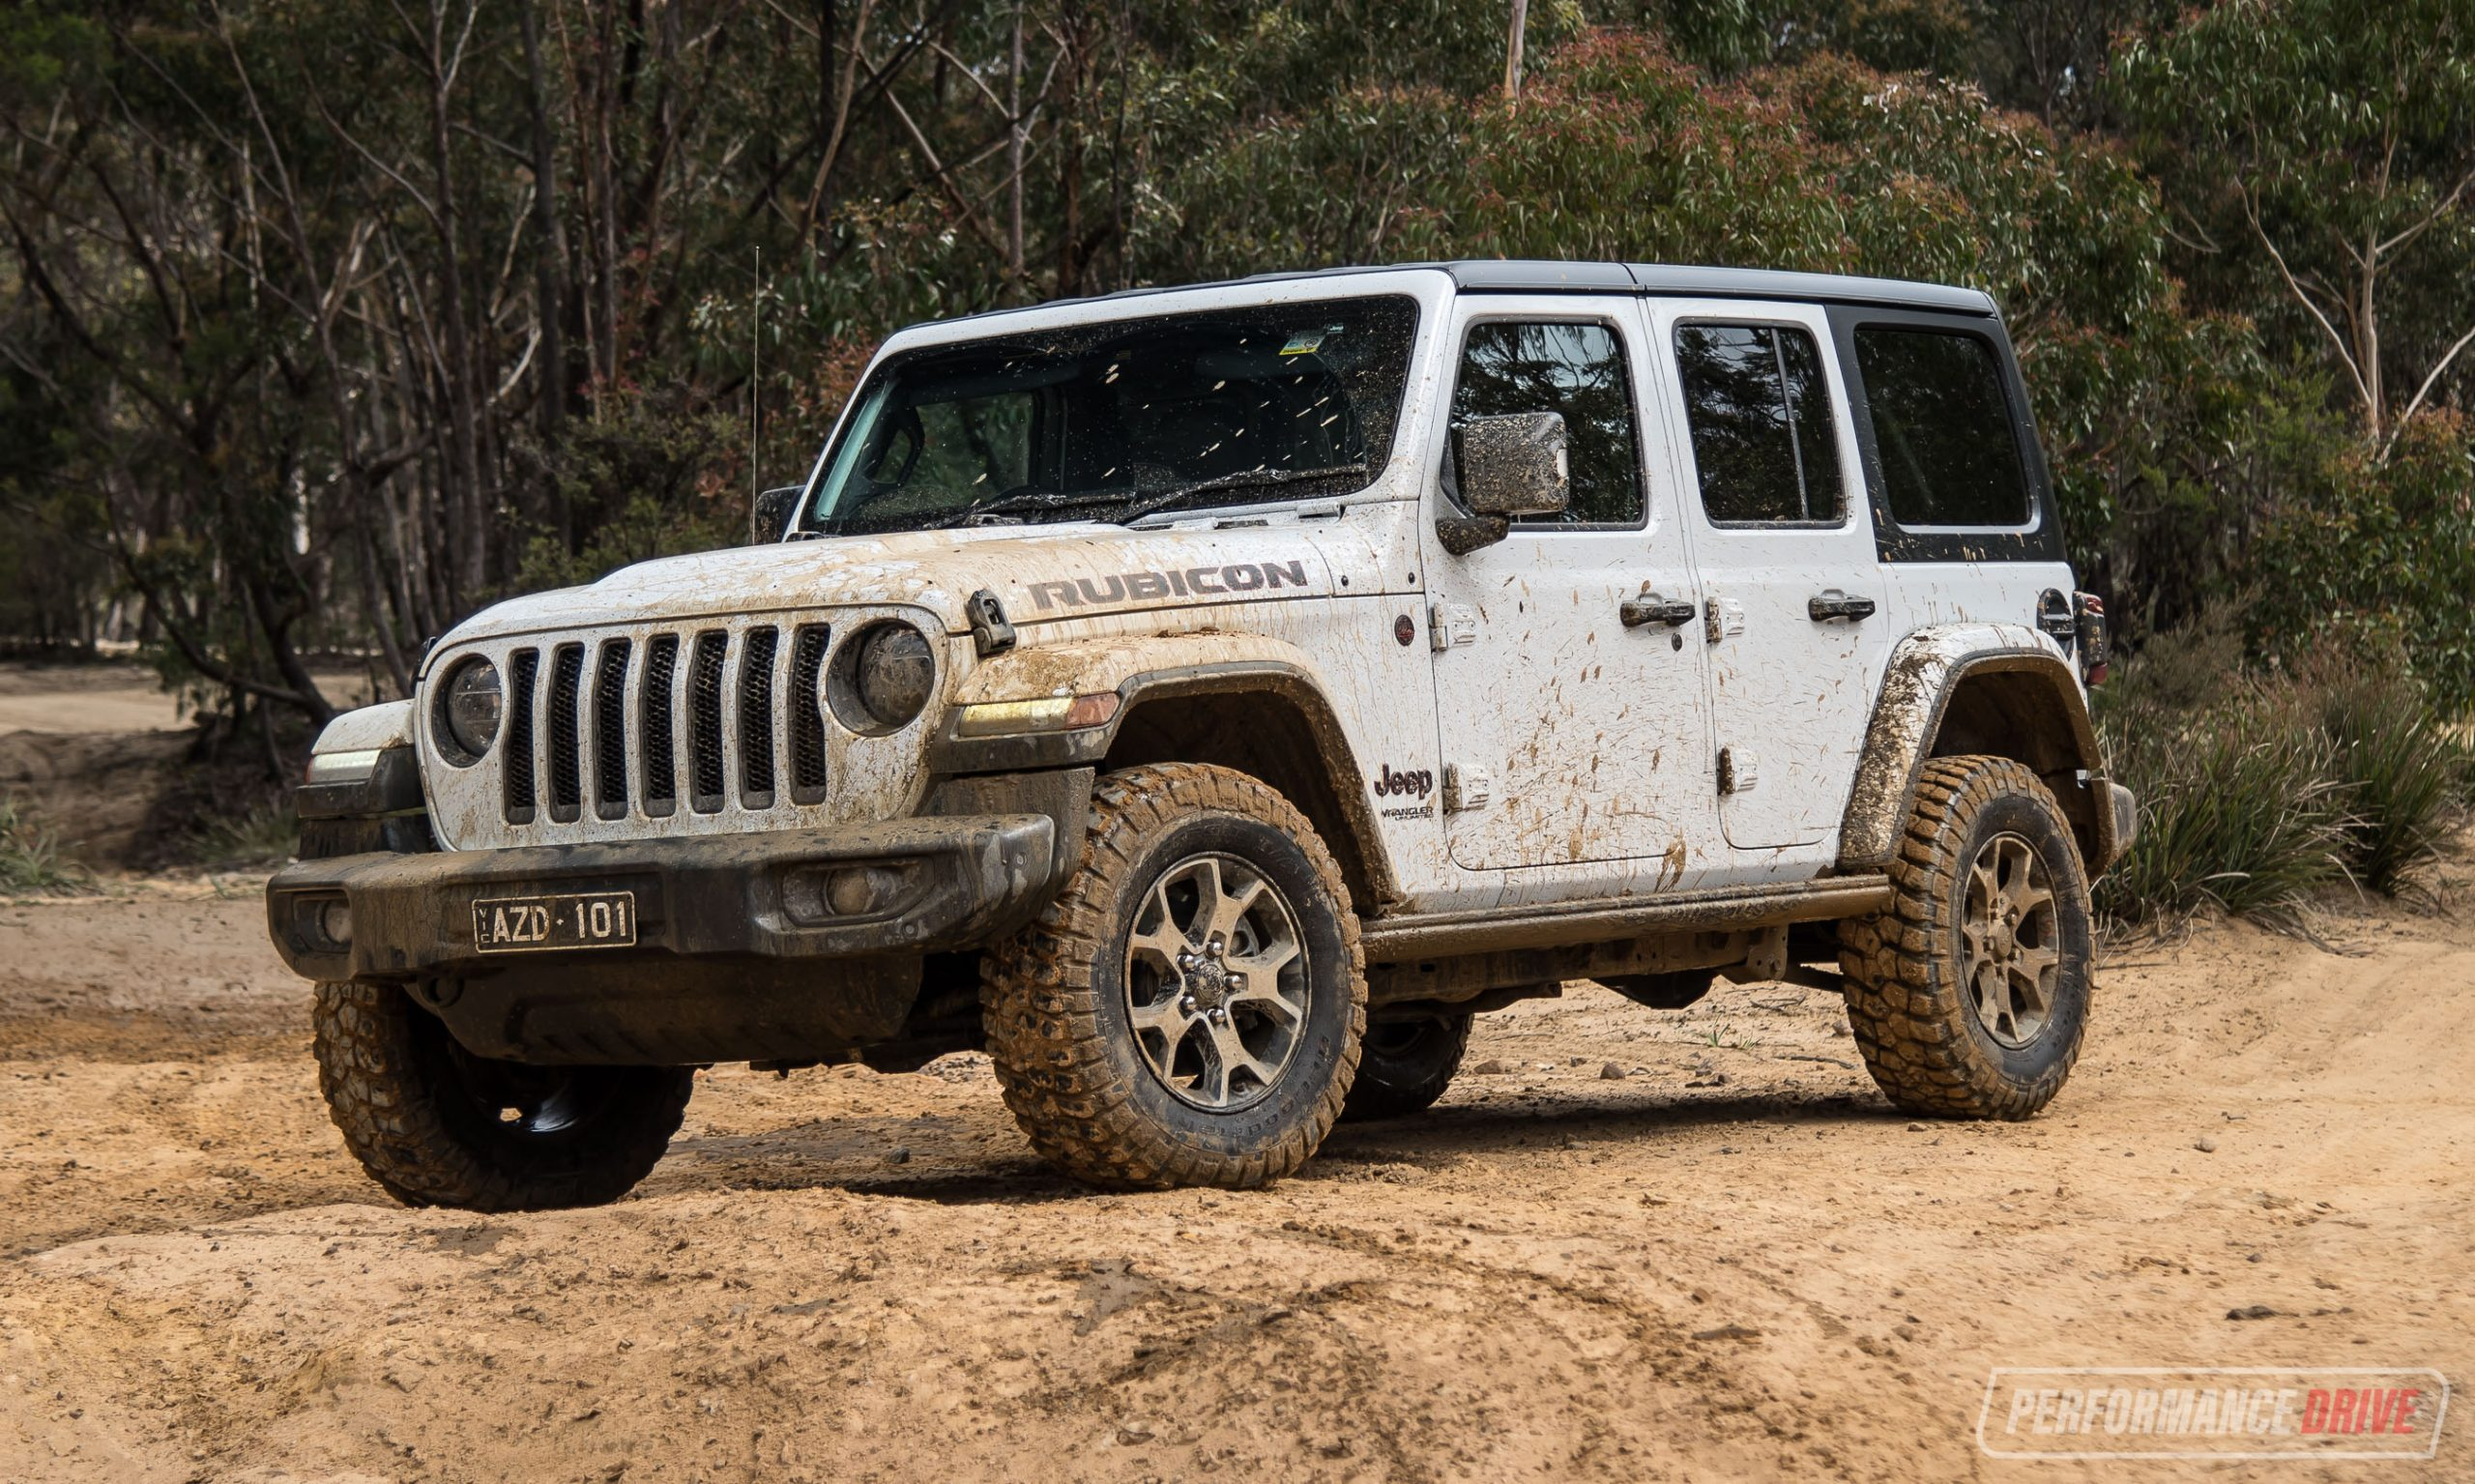 2020 Jeep Wrangler Rubicon diesel review (video)